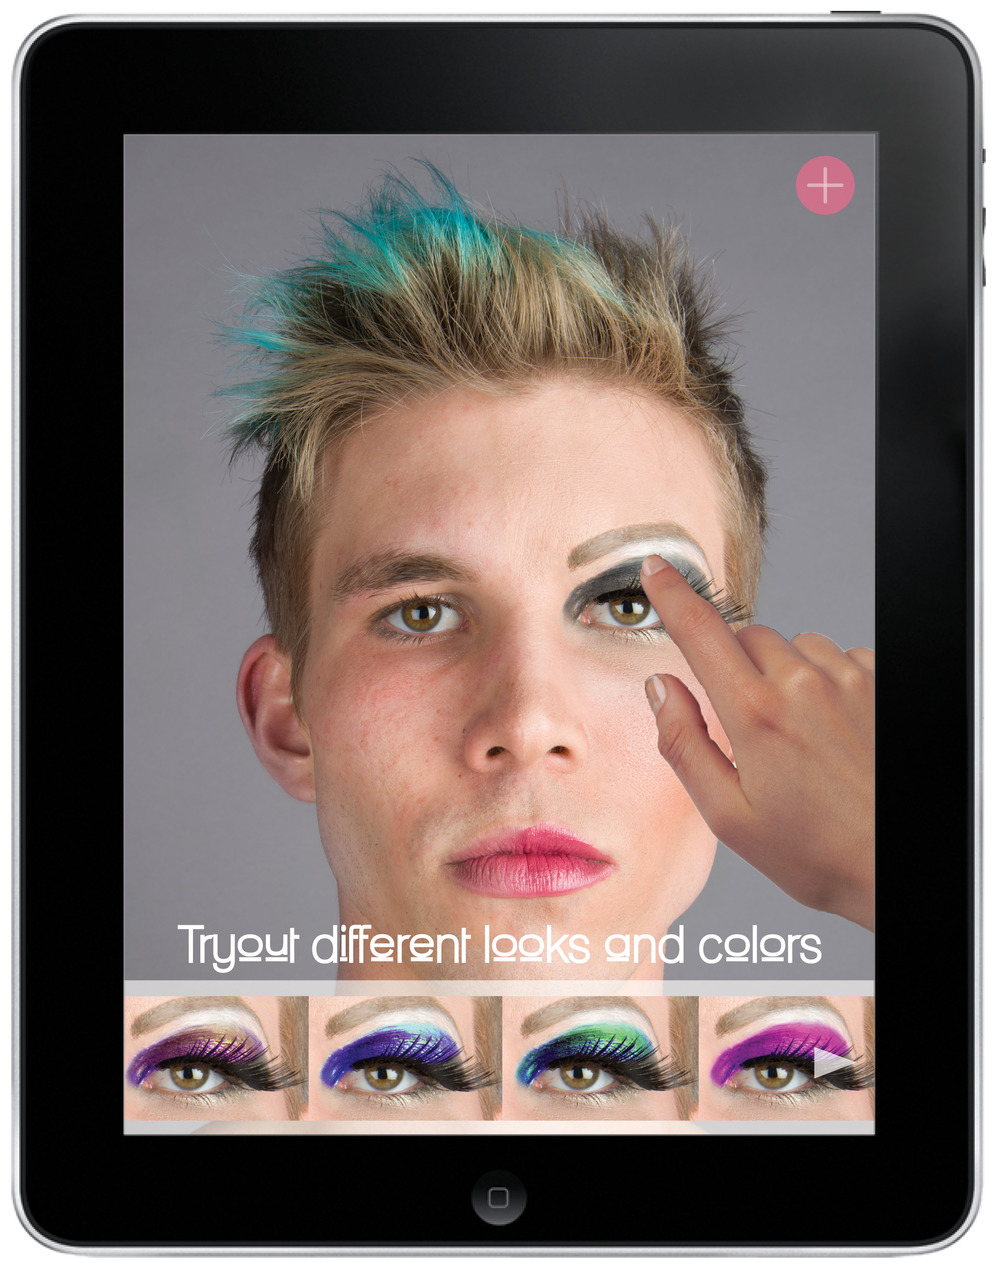 By touching the drag queen's facial features, you can tryout different looks and colors. You can also upload your own photo by touching the button at the top of the screen.